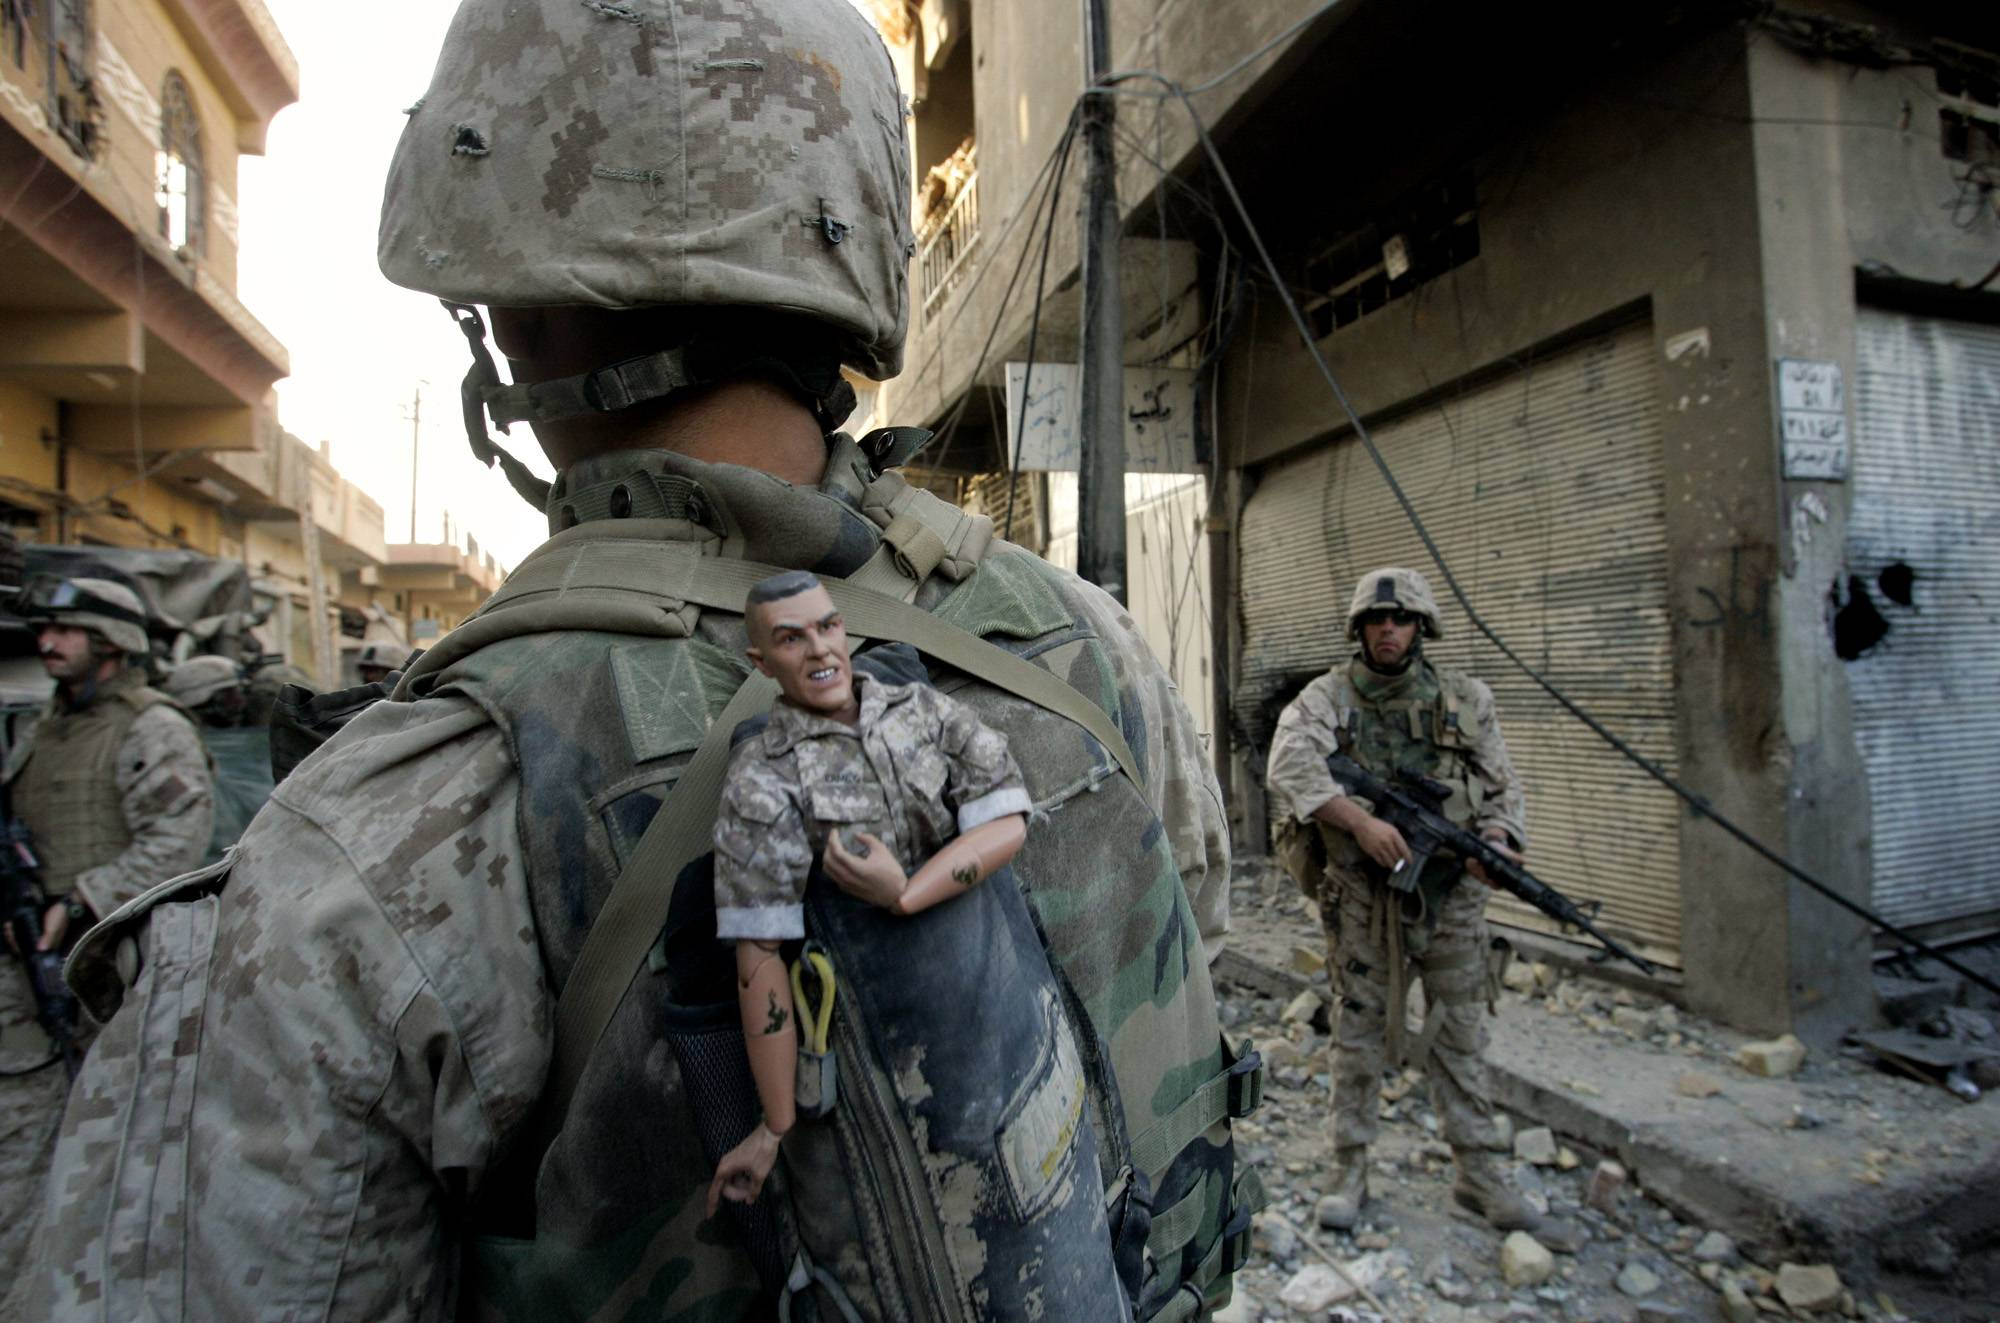 In Sunday, Nov. 14, 2004 file photo made by Associated Press photographer Anja Niedringhaus, a U.S. Marine of the 1st Division carries a mascot for good luck in his backpack as his unit pushed further into the western part of Fallujah, Iraq.